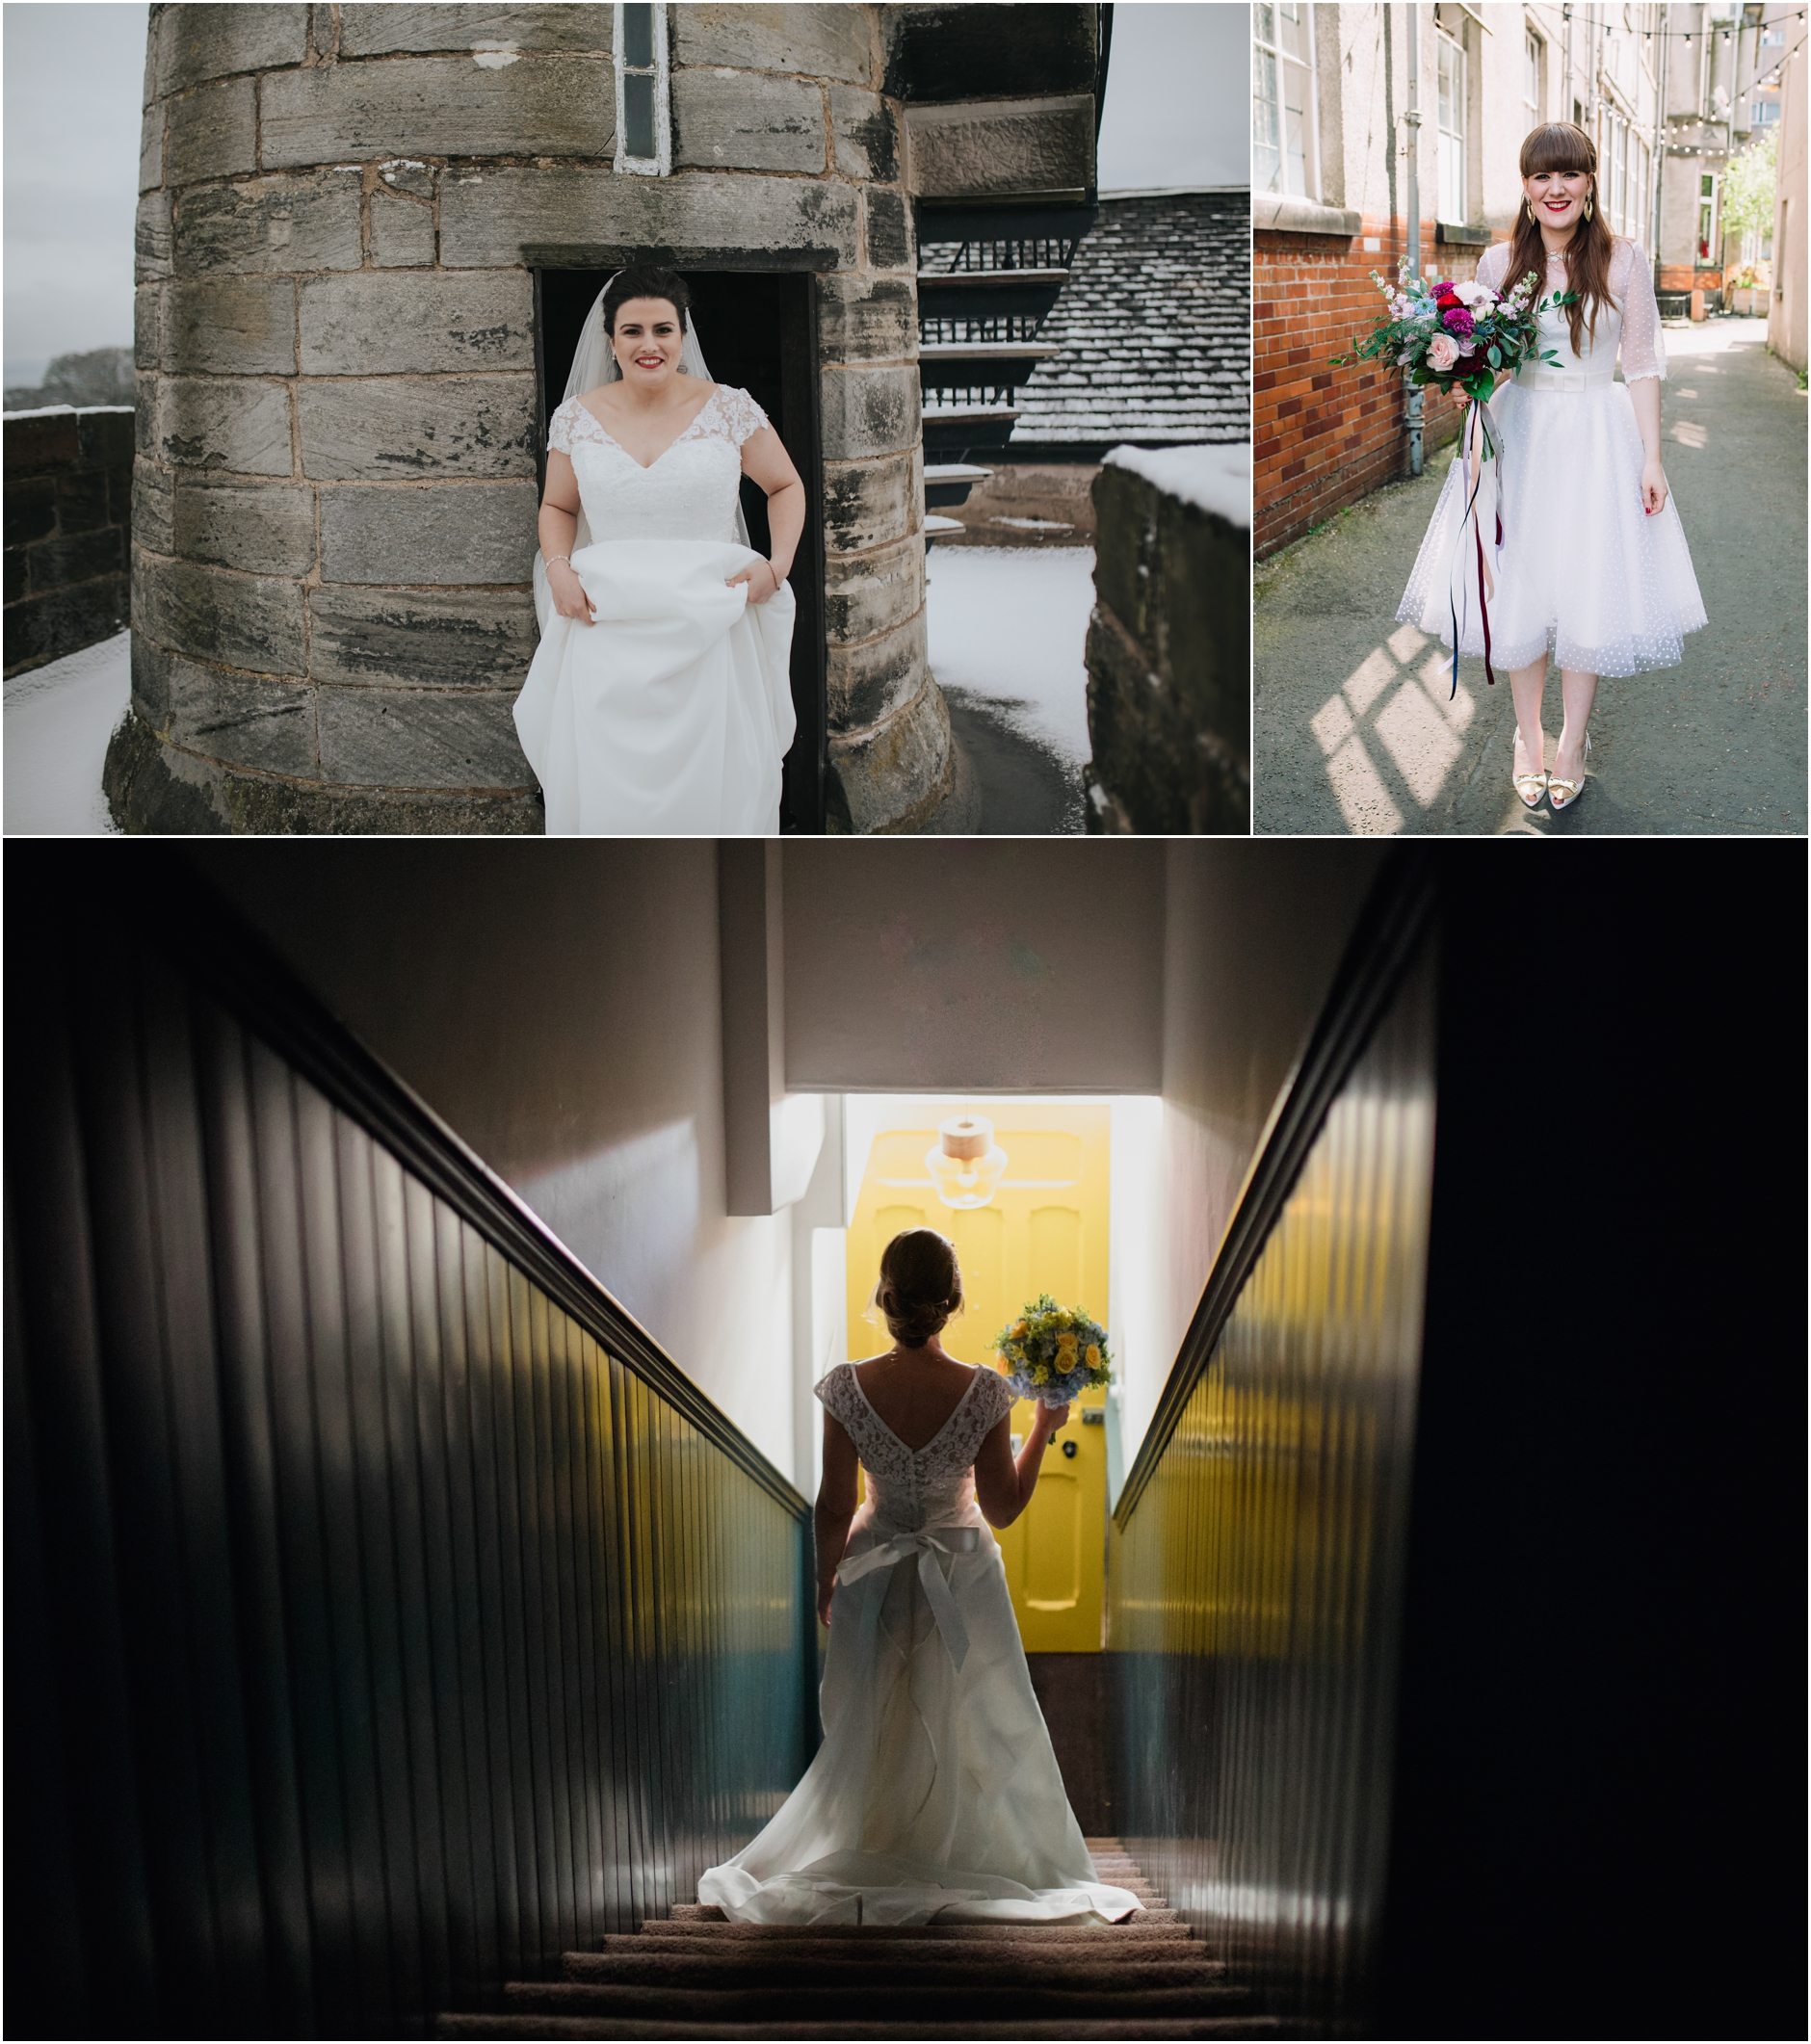 scottish brides on their wedding day wedding photography